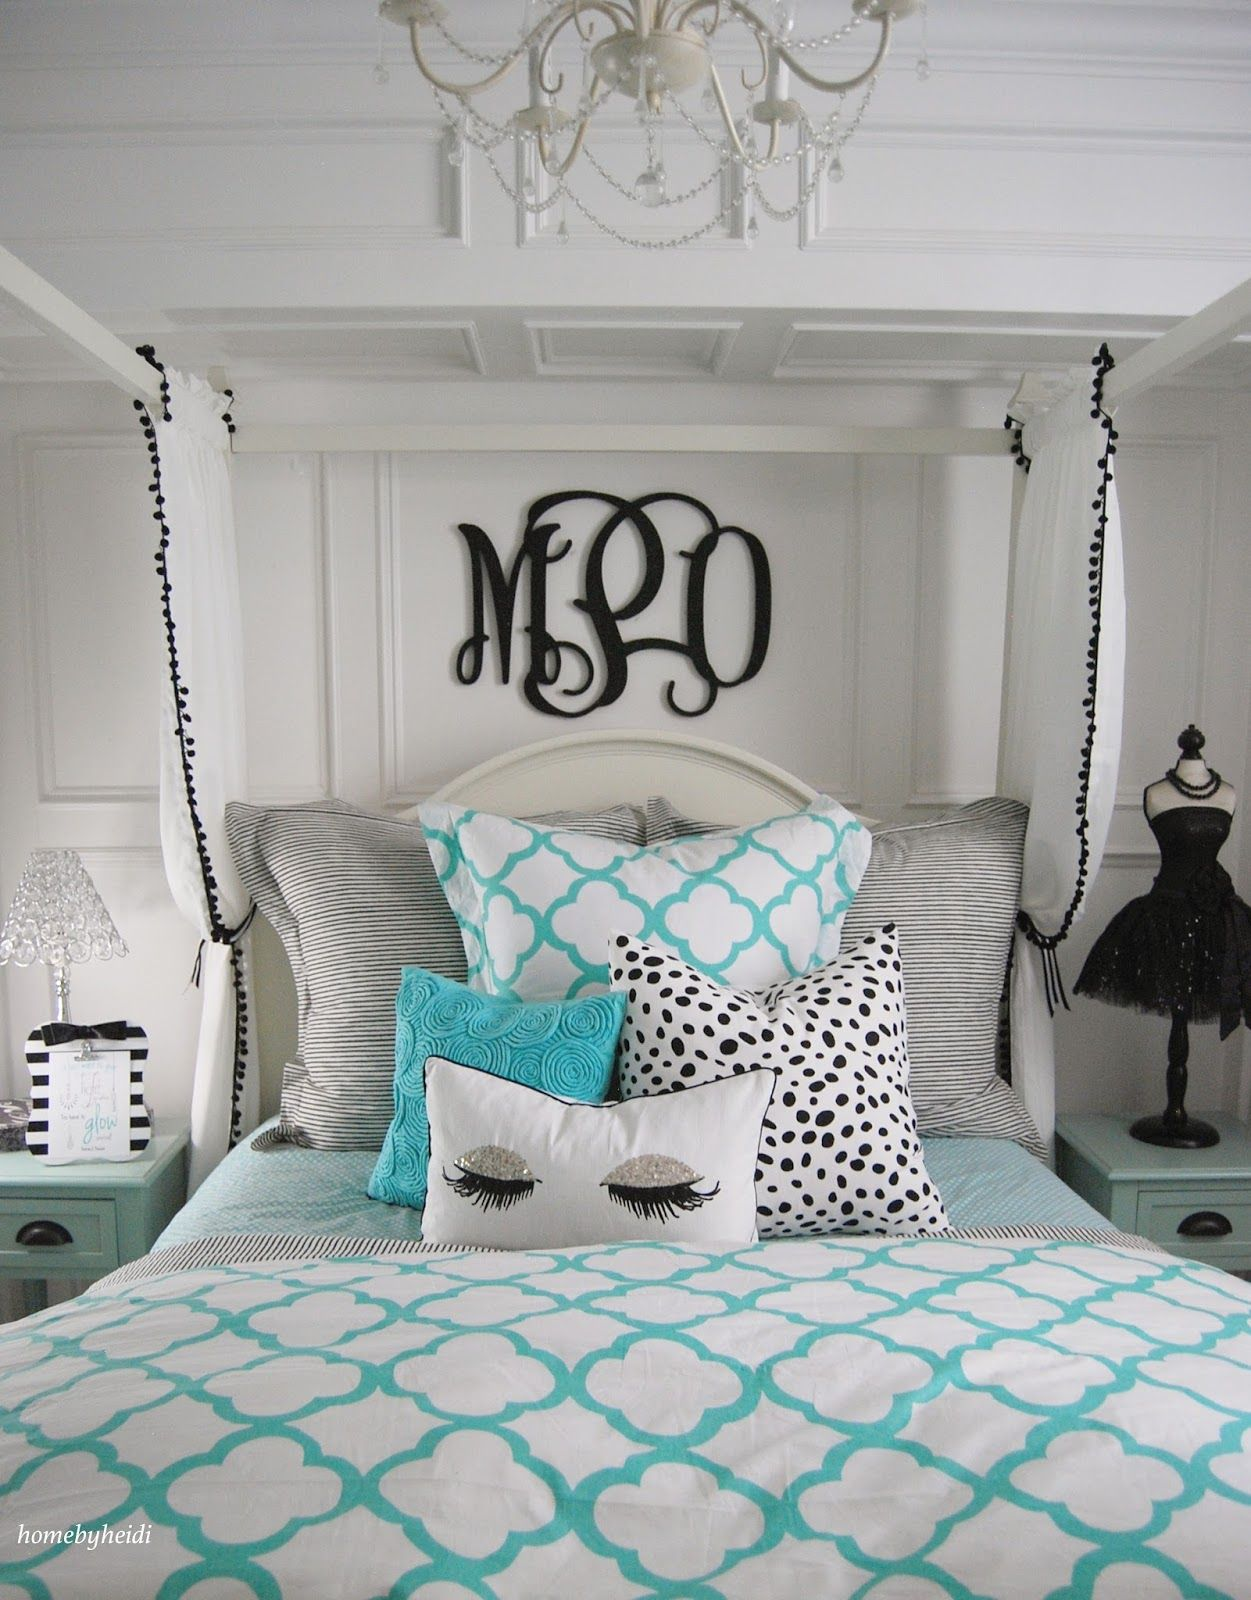 Audrey Hepburn Bedroom Galleryhip The Hippest Pics Inspired Old Hollywood Nice Design